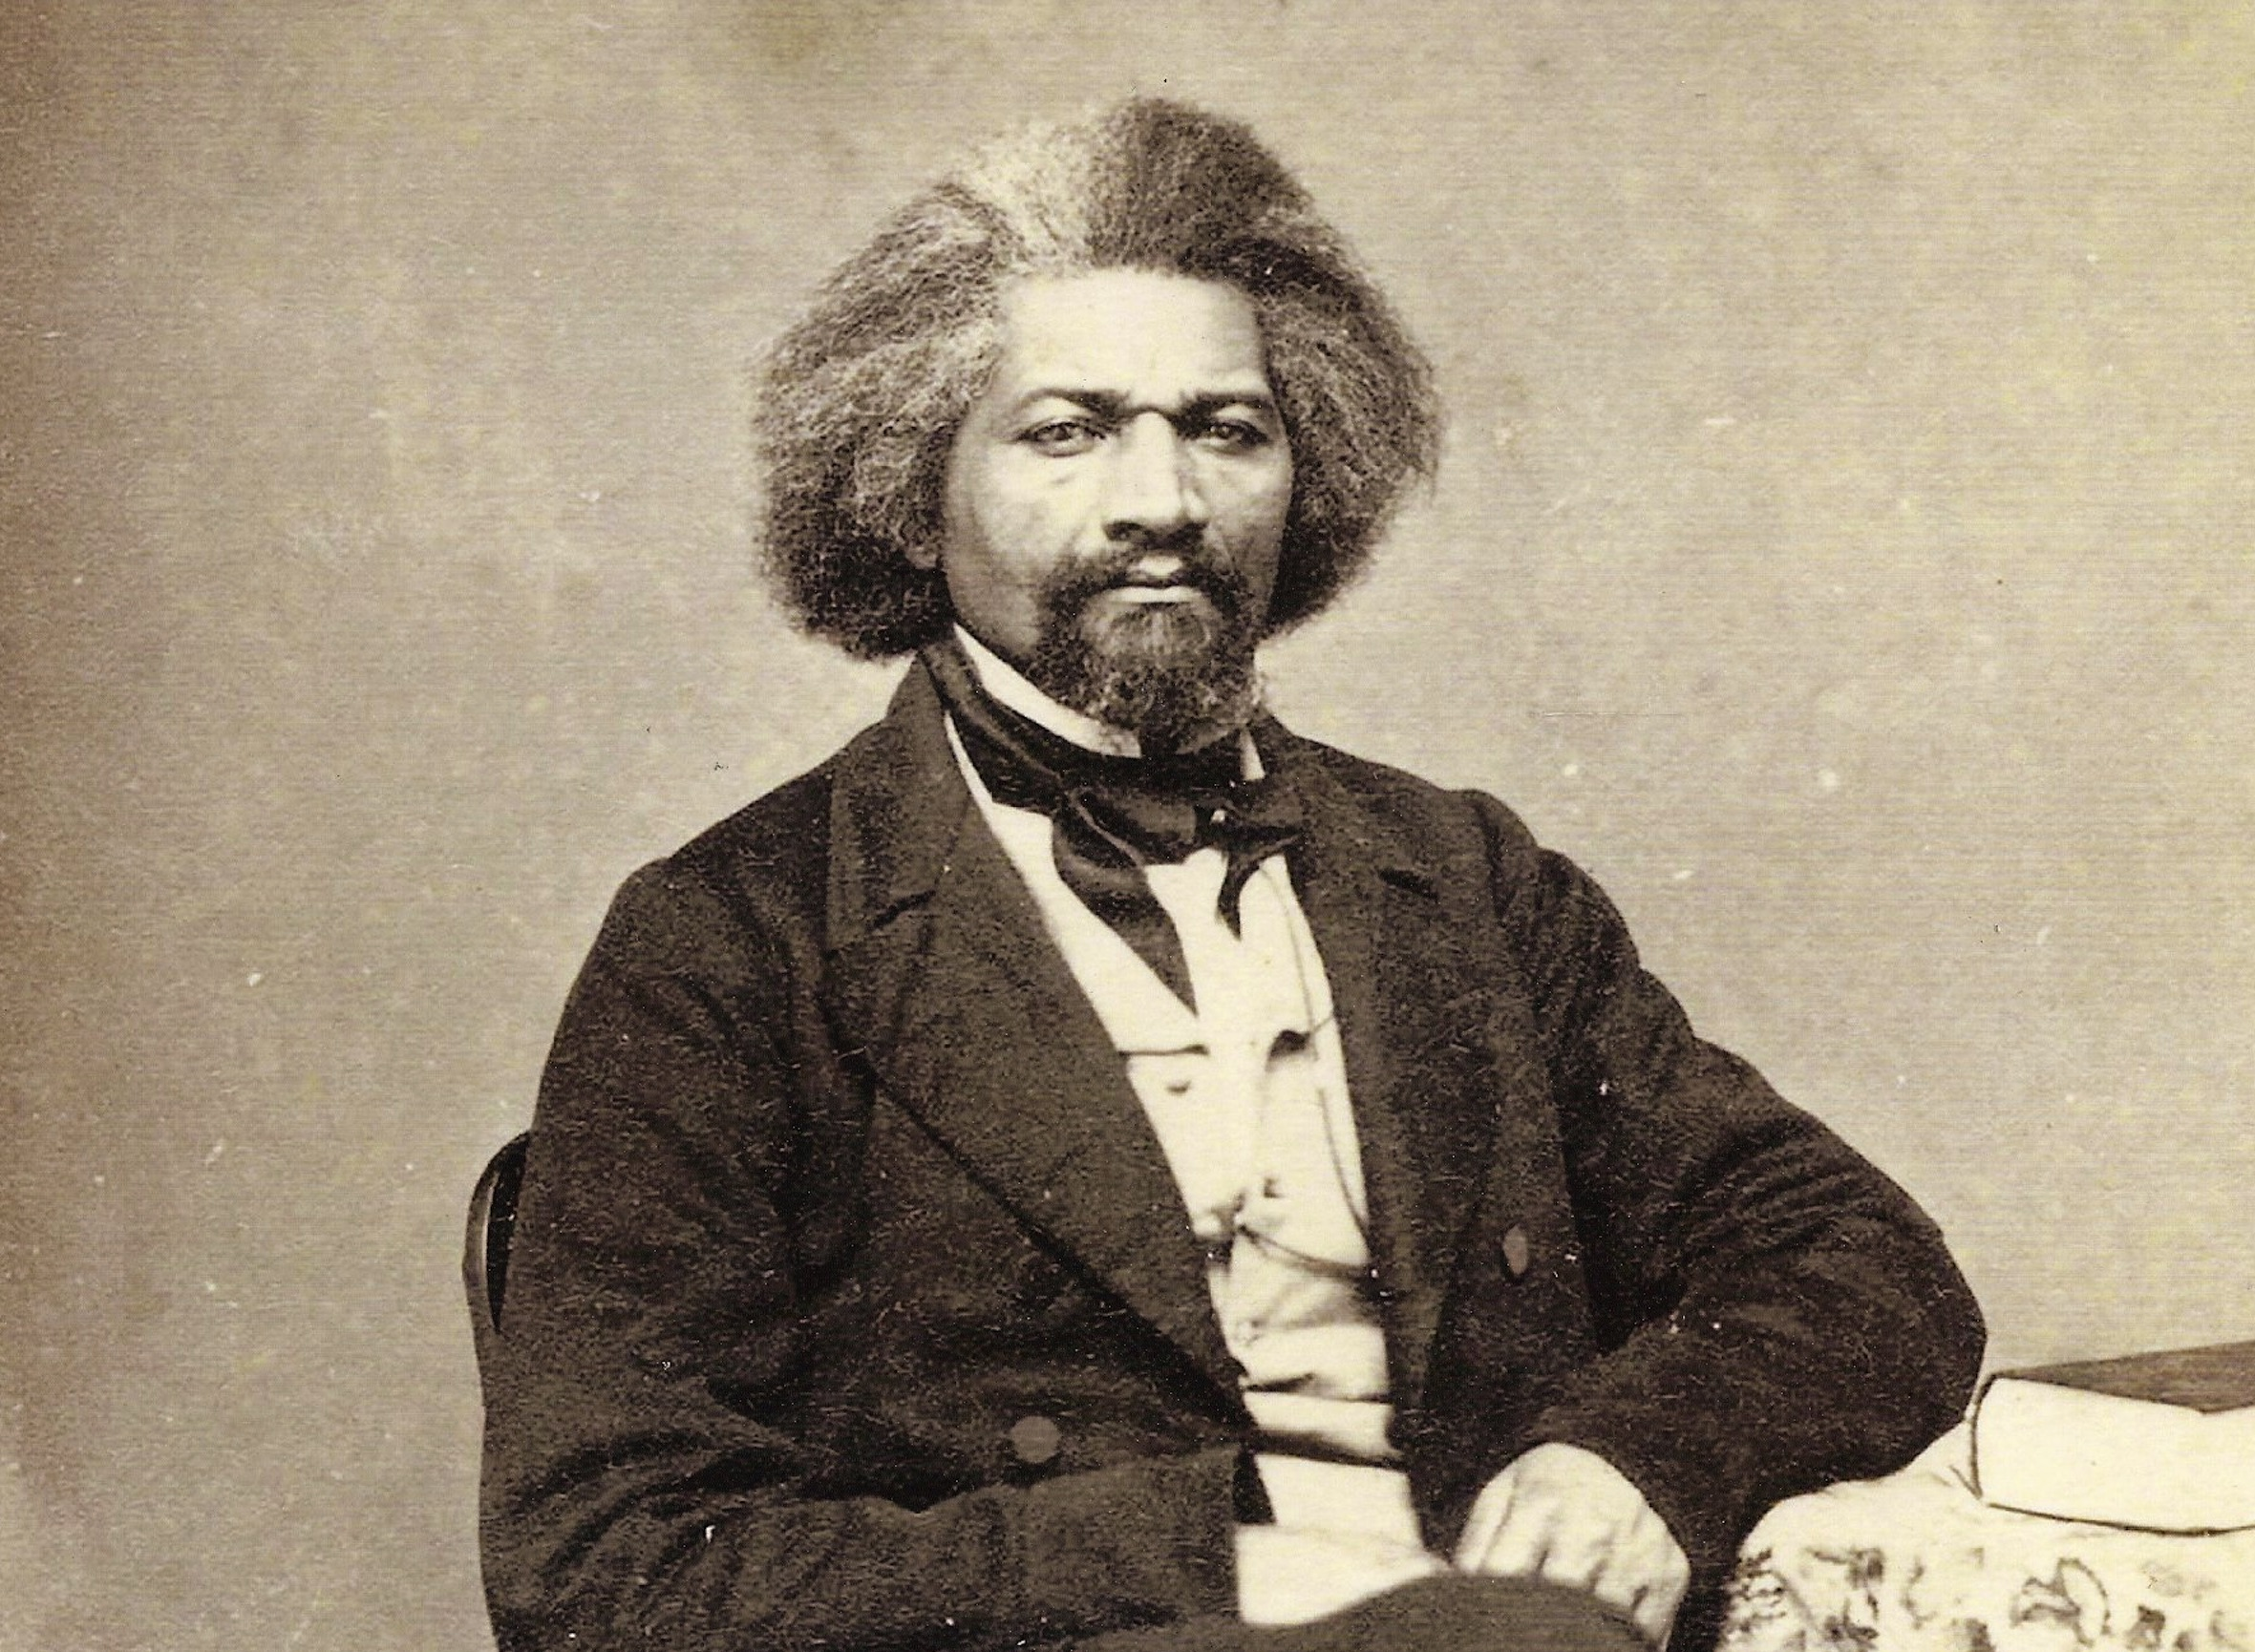 frederick douglass s faith in photography new republic